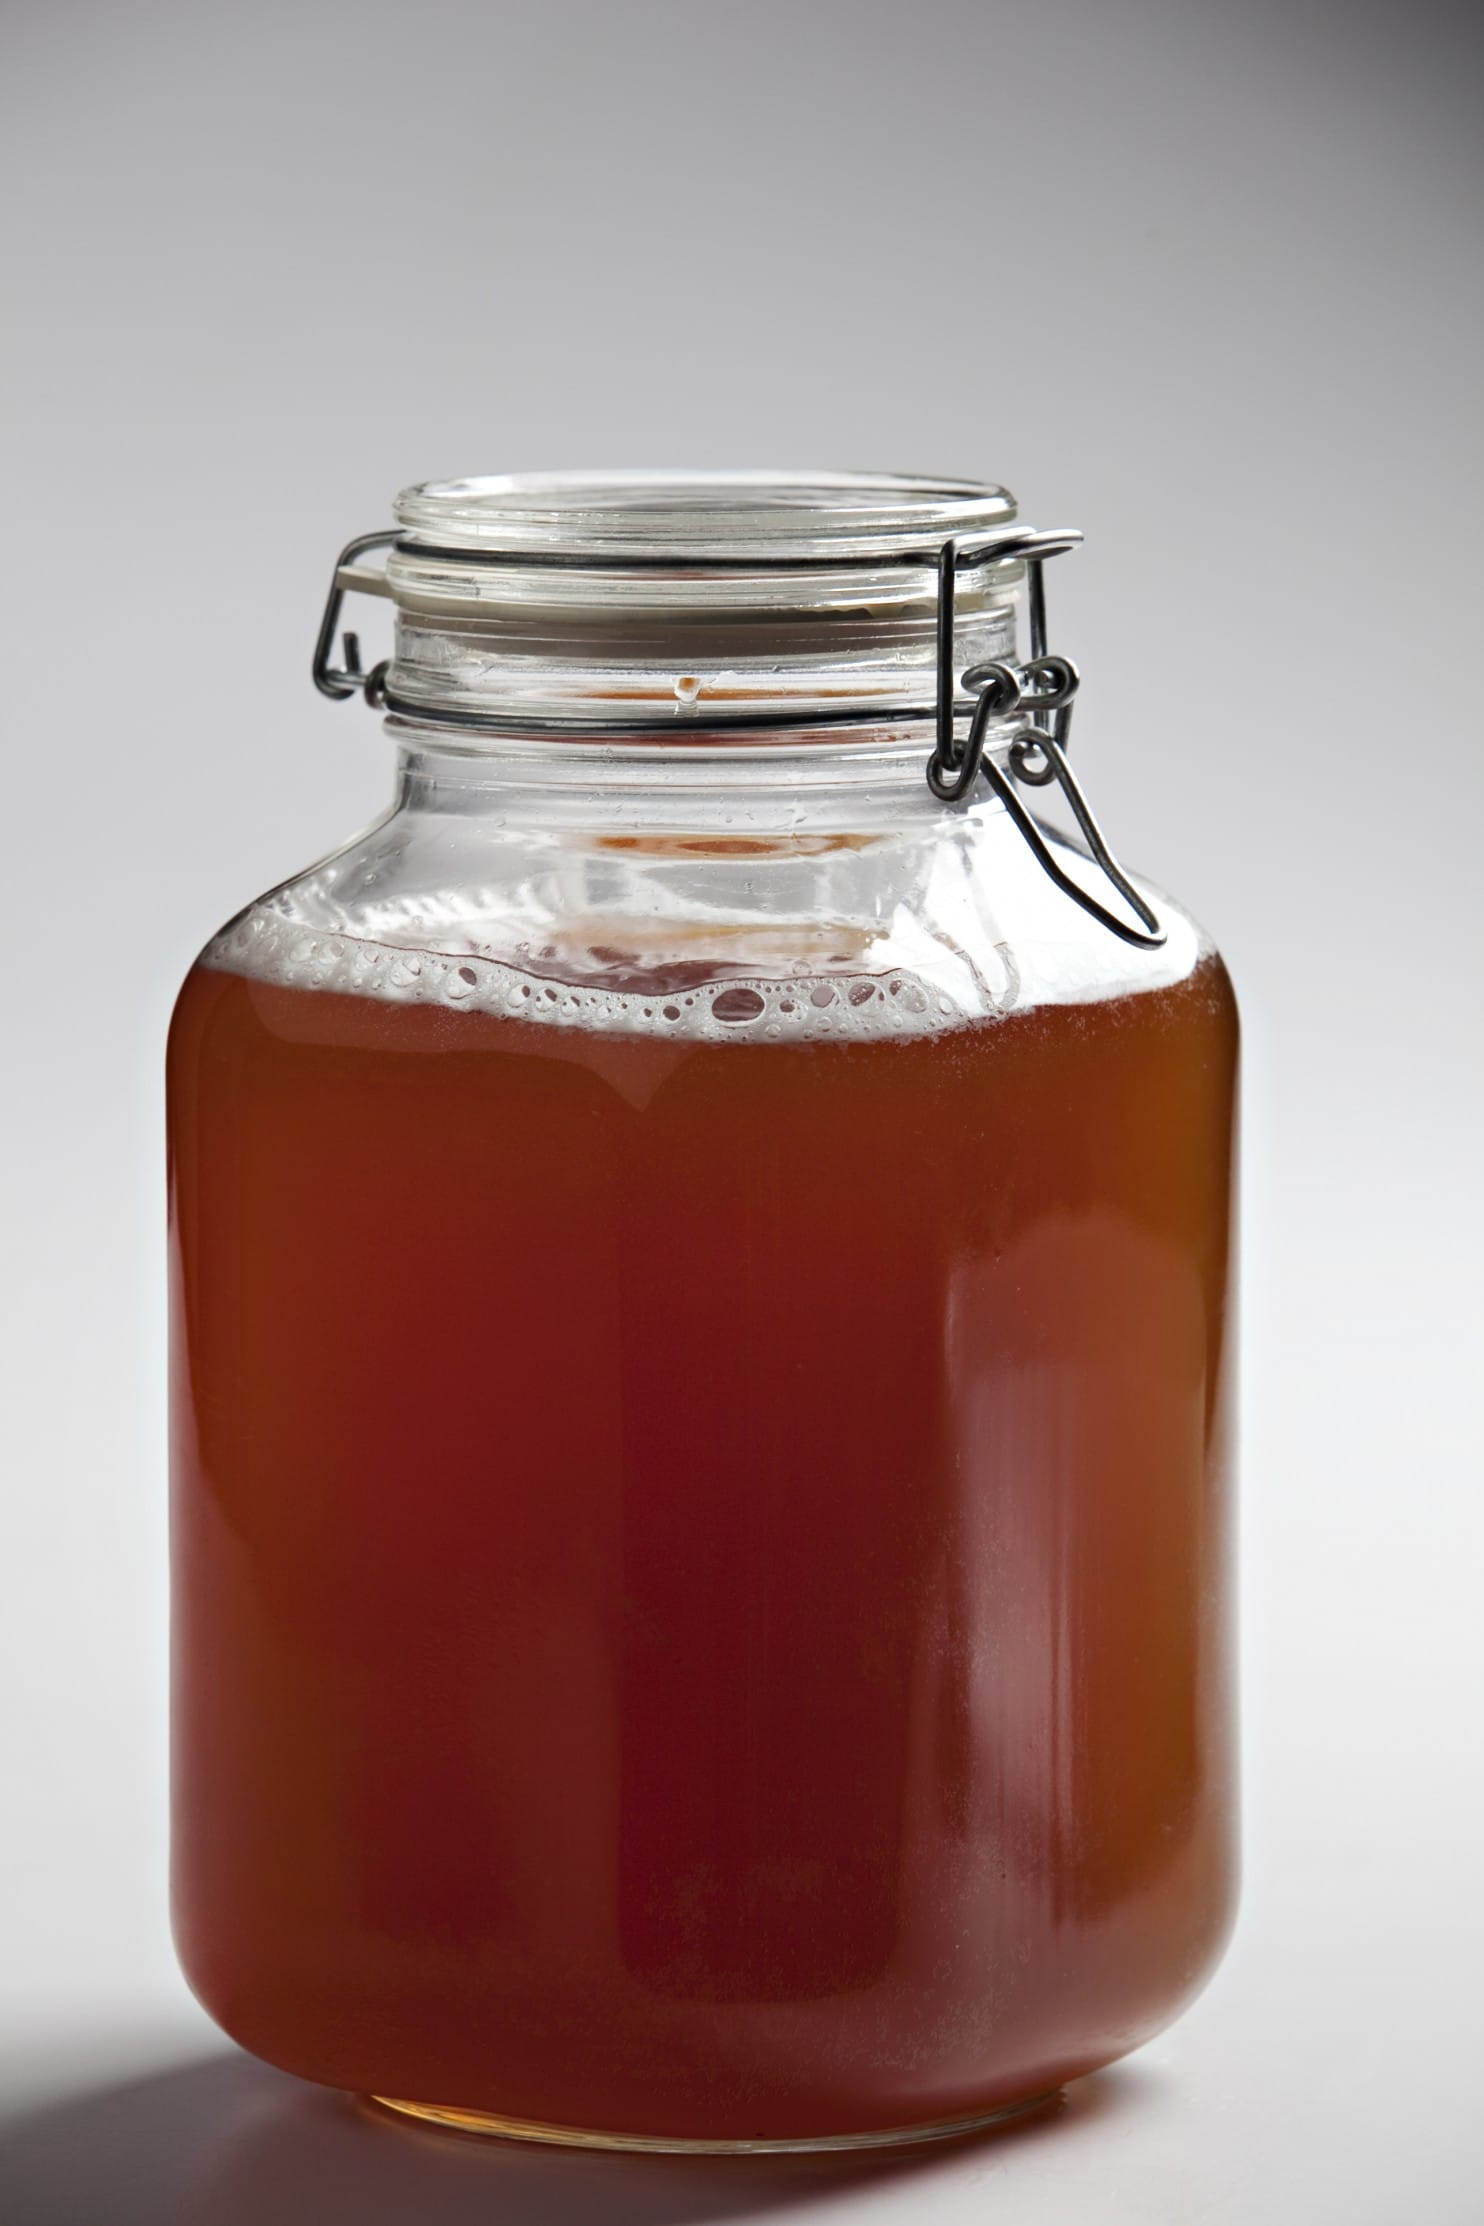 rueven art glass vase of is kombucha good for you the washington post for food010 1293110340 12 0 952866289